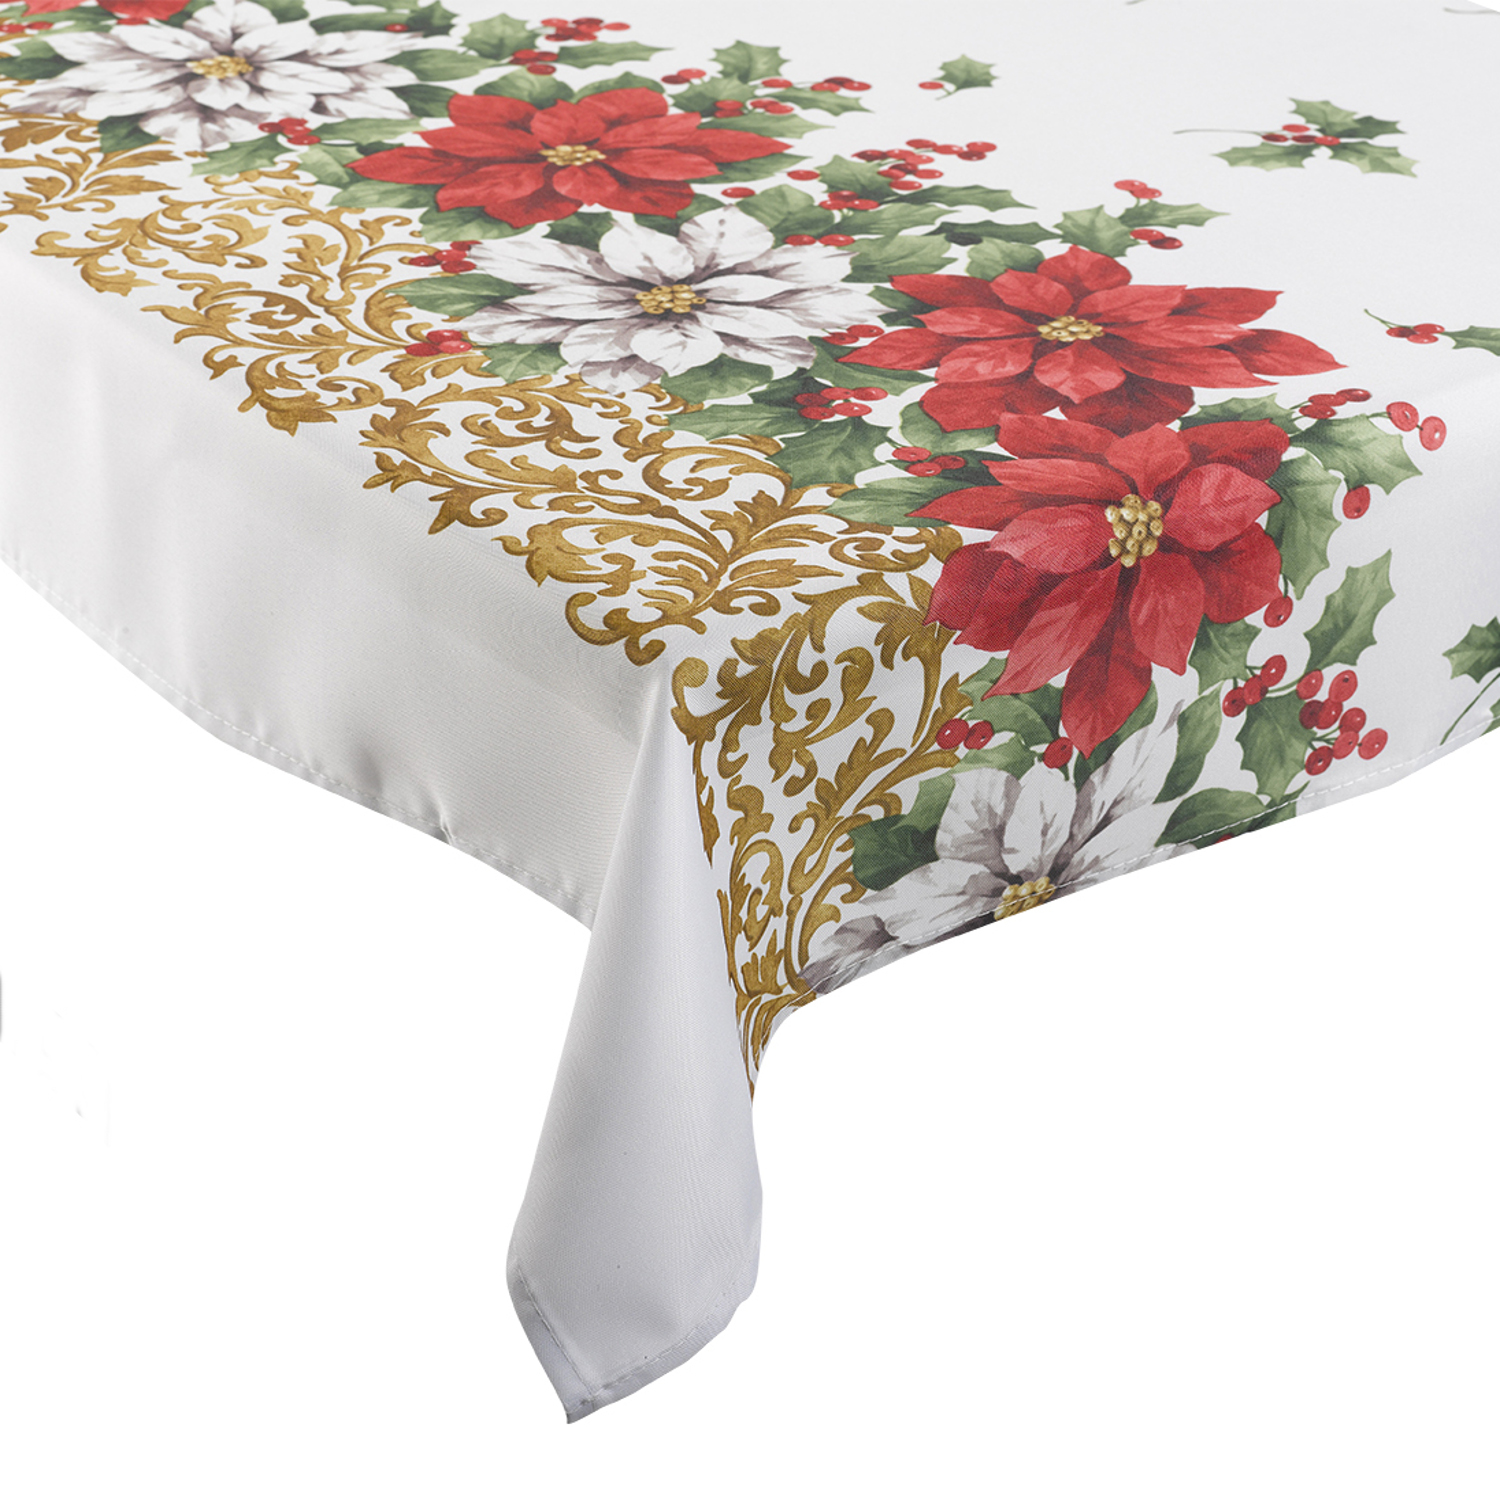 manita no l linge de table festive floral poinsettia polyester de no l nappe ebay. Black Bedroom Furniture Sets. Home Design Ideas